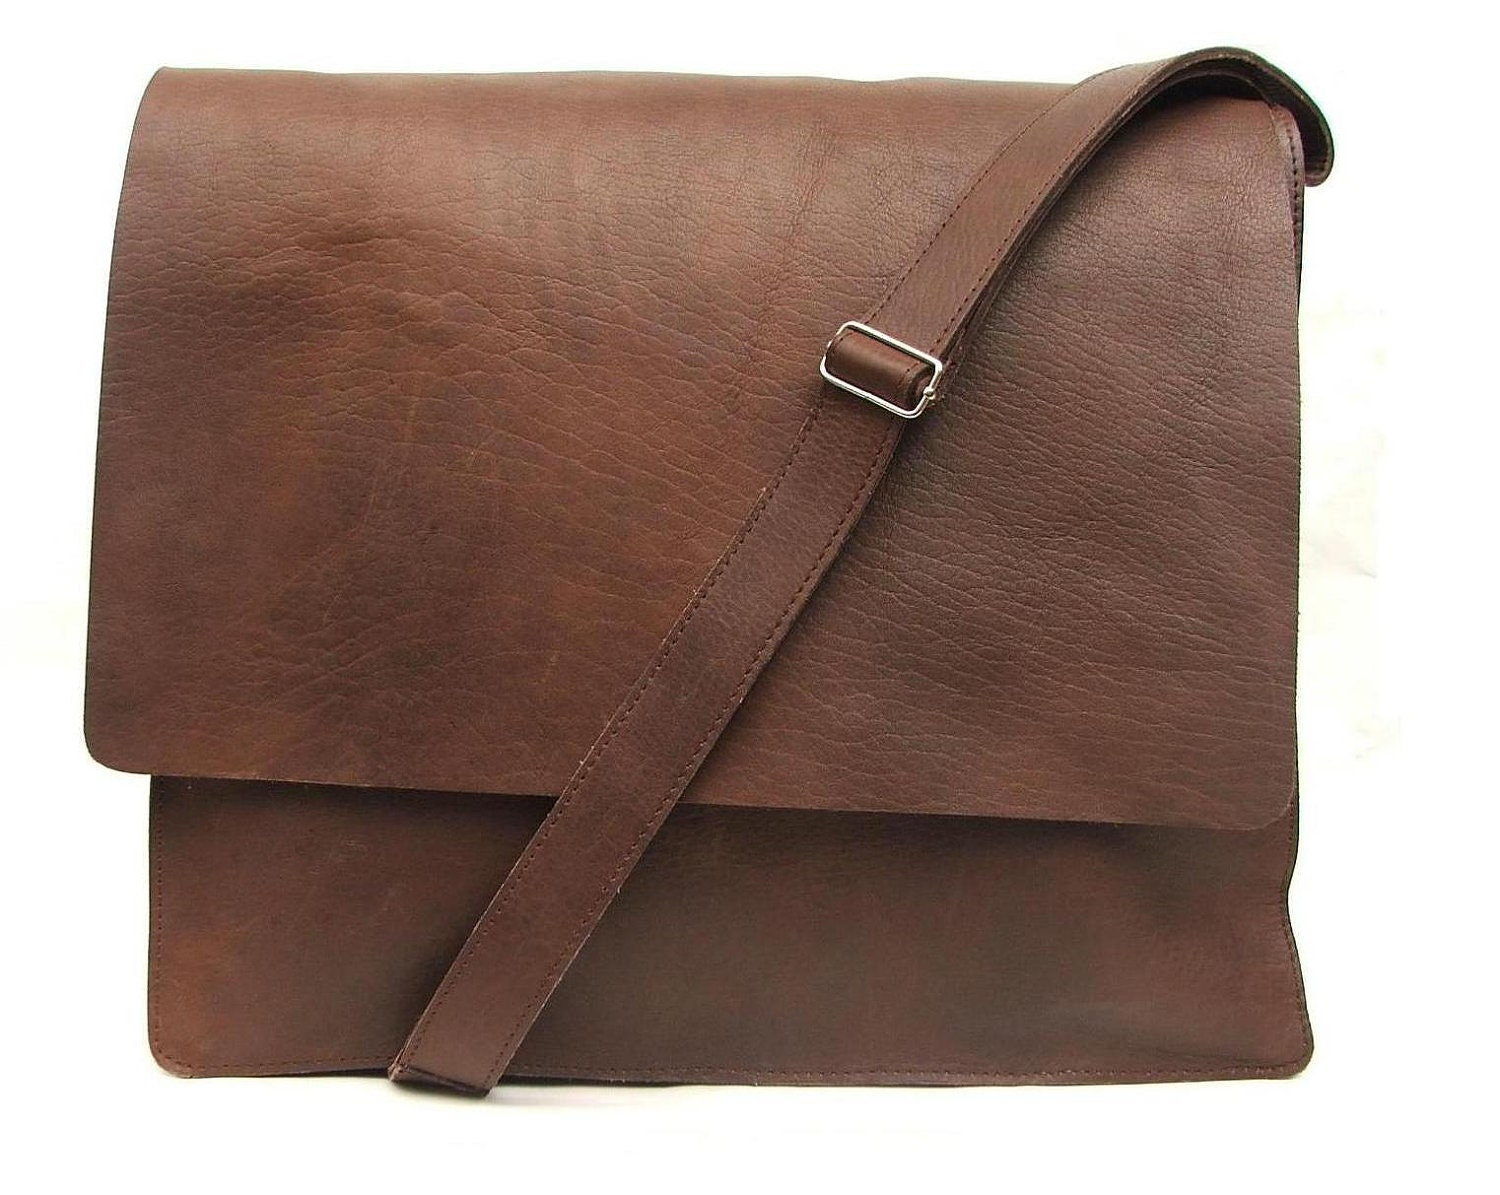 Buy Messenger bags from the Mens department at Debenhams. You'll find the widest range of Messenger bags products online and delivered to your door. Shop today! Brown 'Byron' leather messenger bag Save. Was £ Now £ Caterpillar Black canvas 'Aron' messenger bag Save. £ Made by Stitch Treacle 'Cartmel' handmade leather.